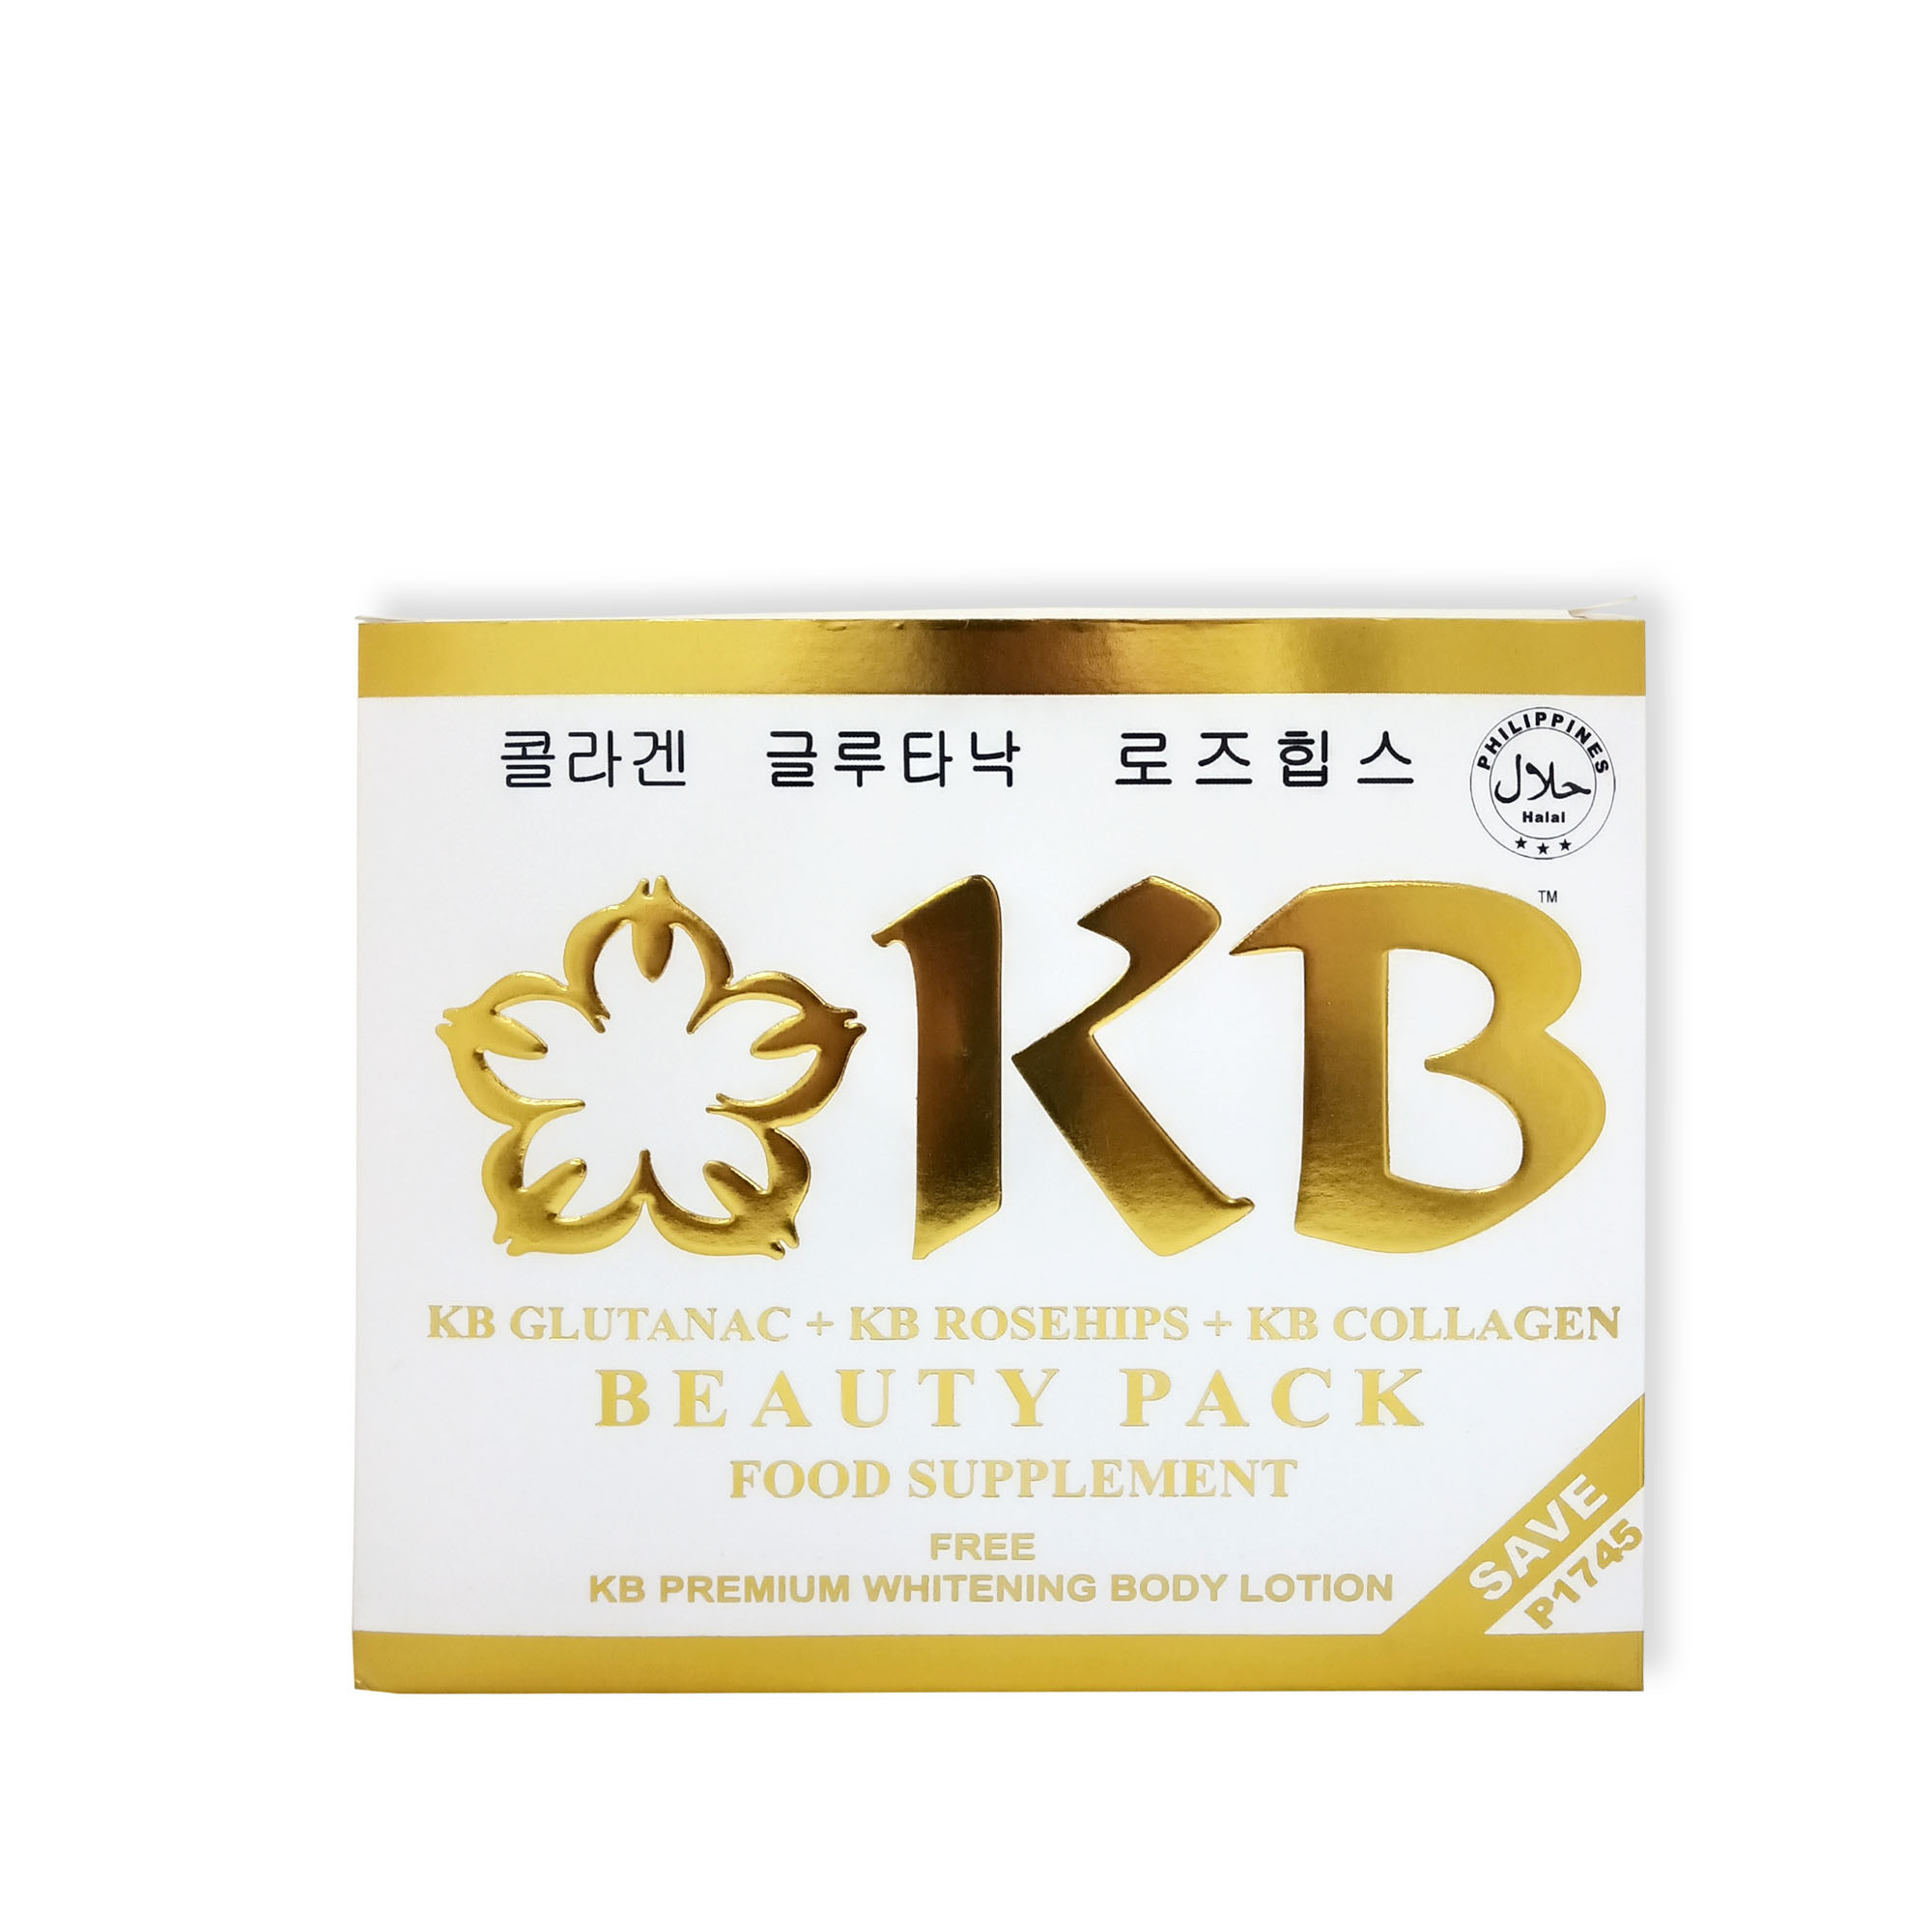 KB Beauty Pack